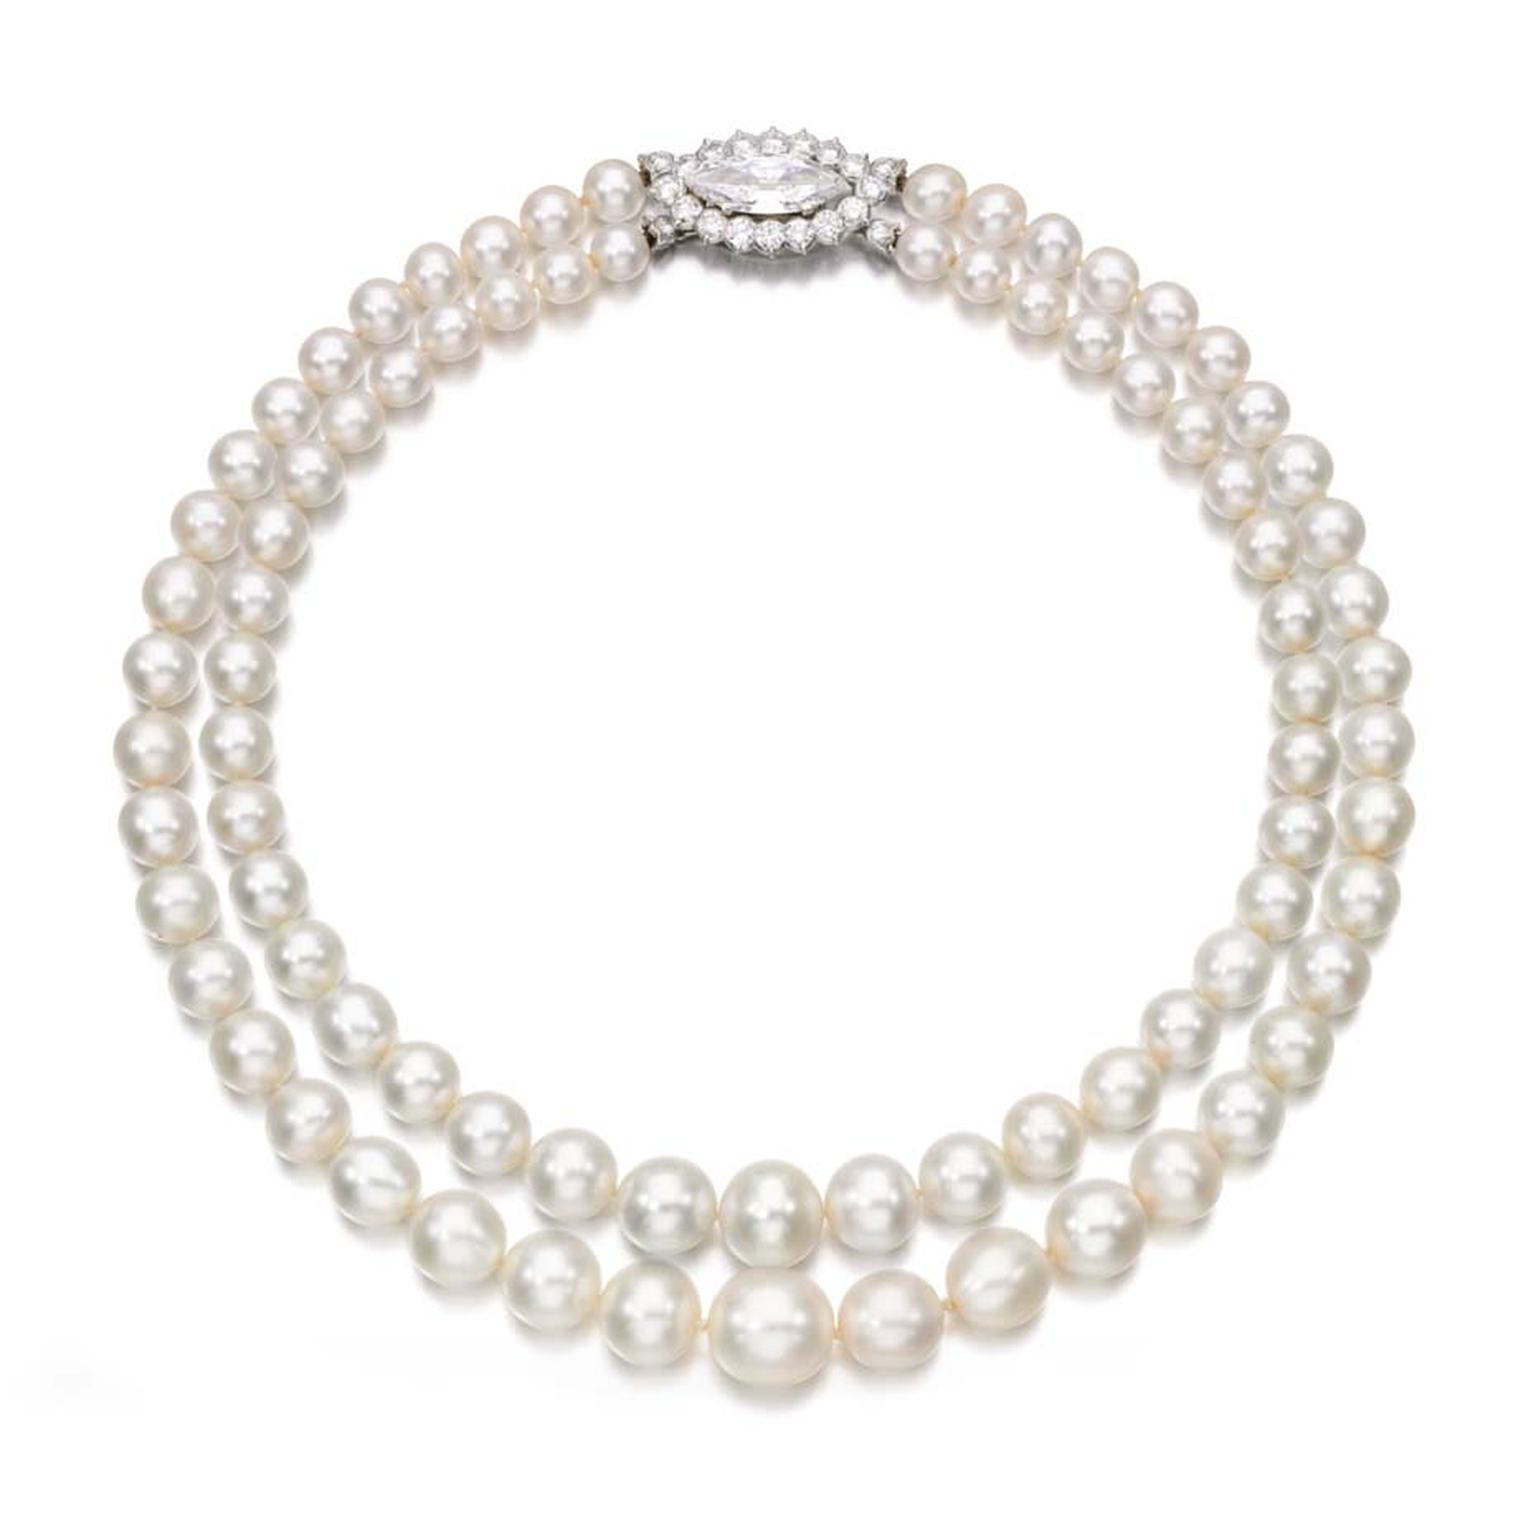 A very rare natural pearl necklace set a new record for a double-row string of pearls at Sotheby's Geneva this week.